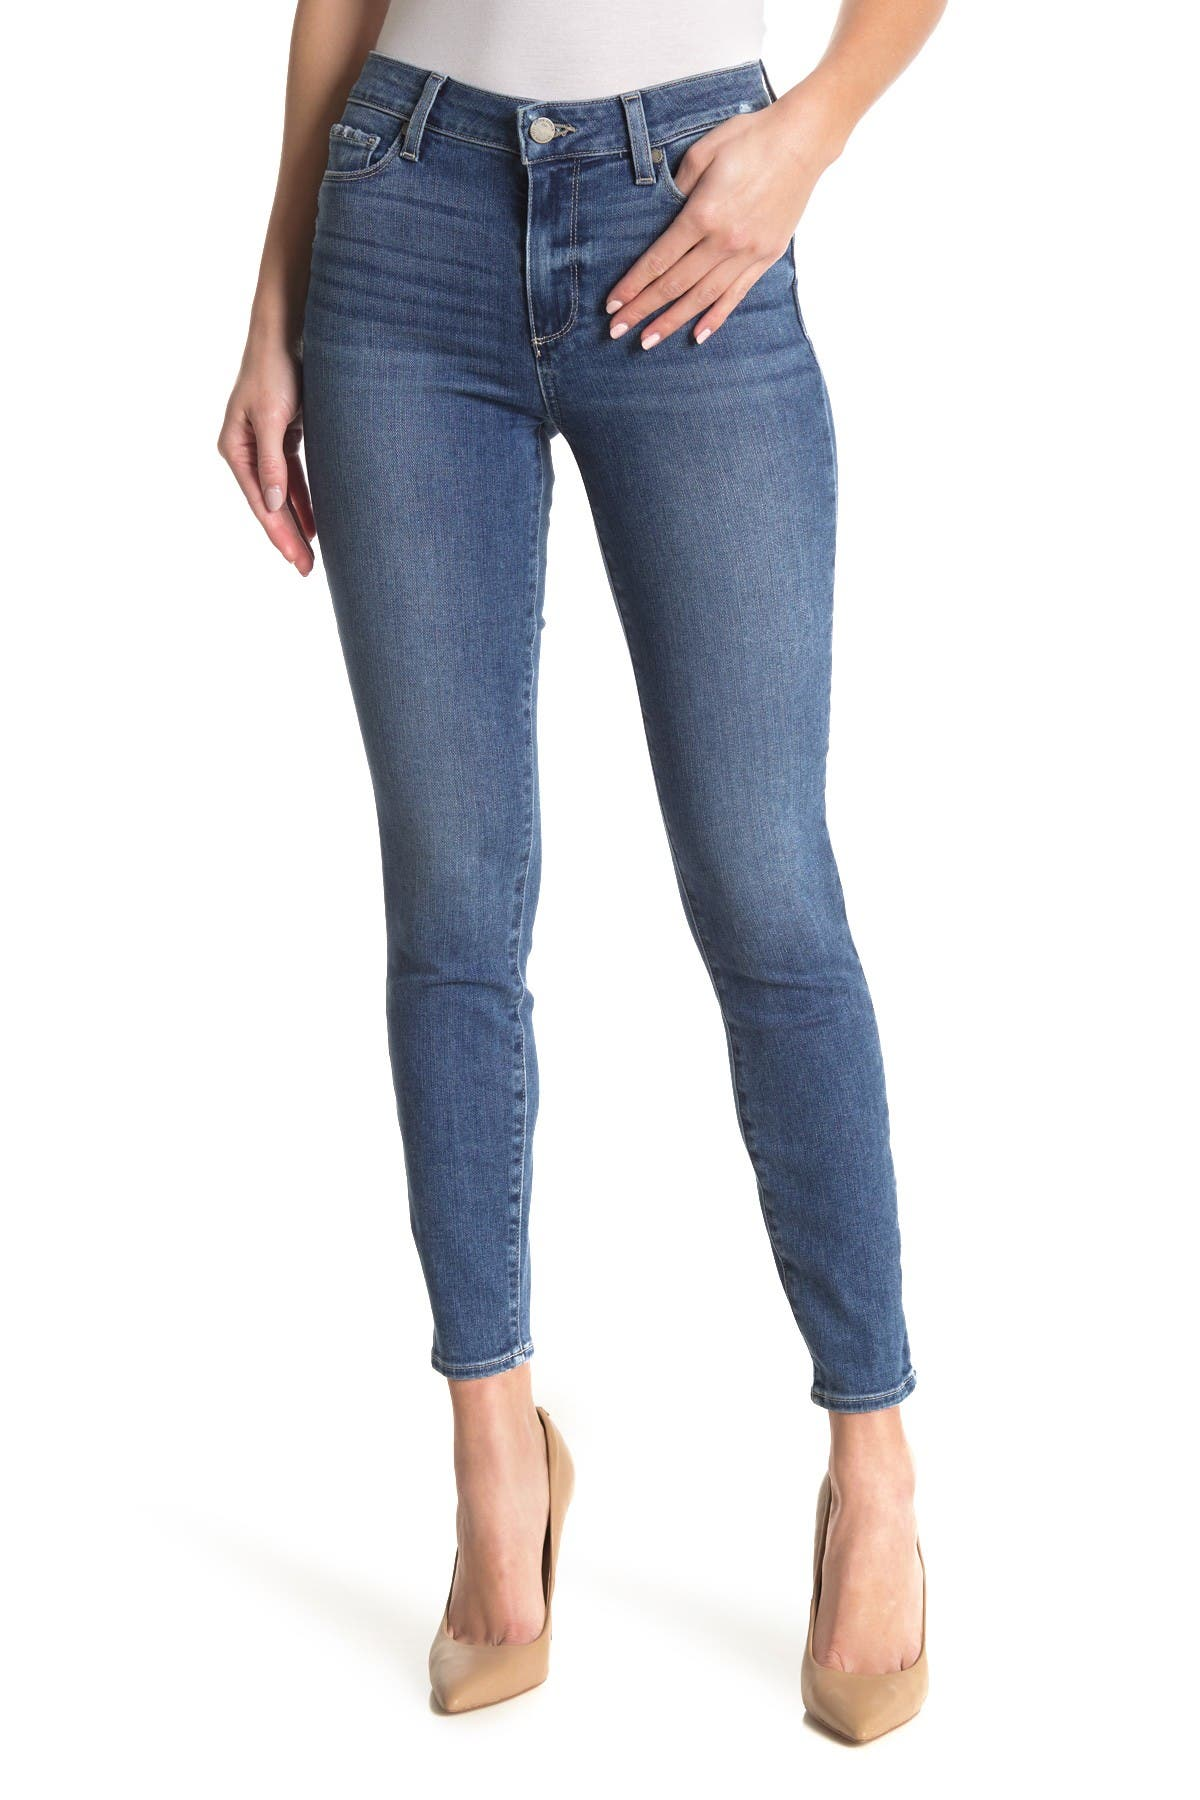 Image of PAIGE Hoxton Ankle Skinny Jeans